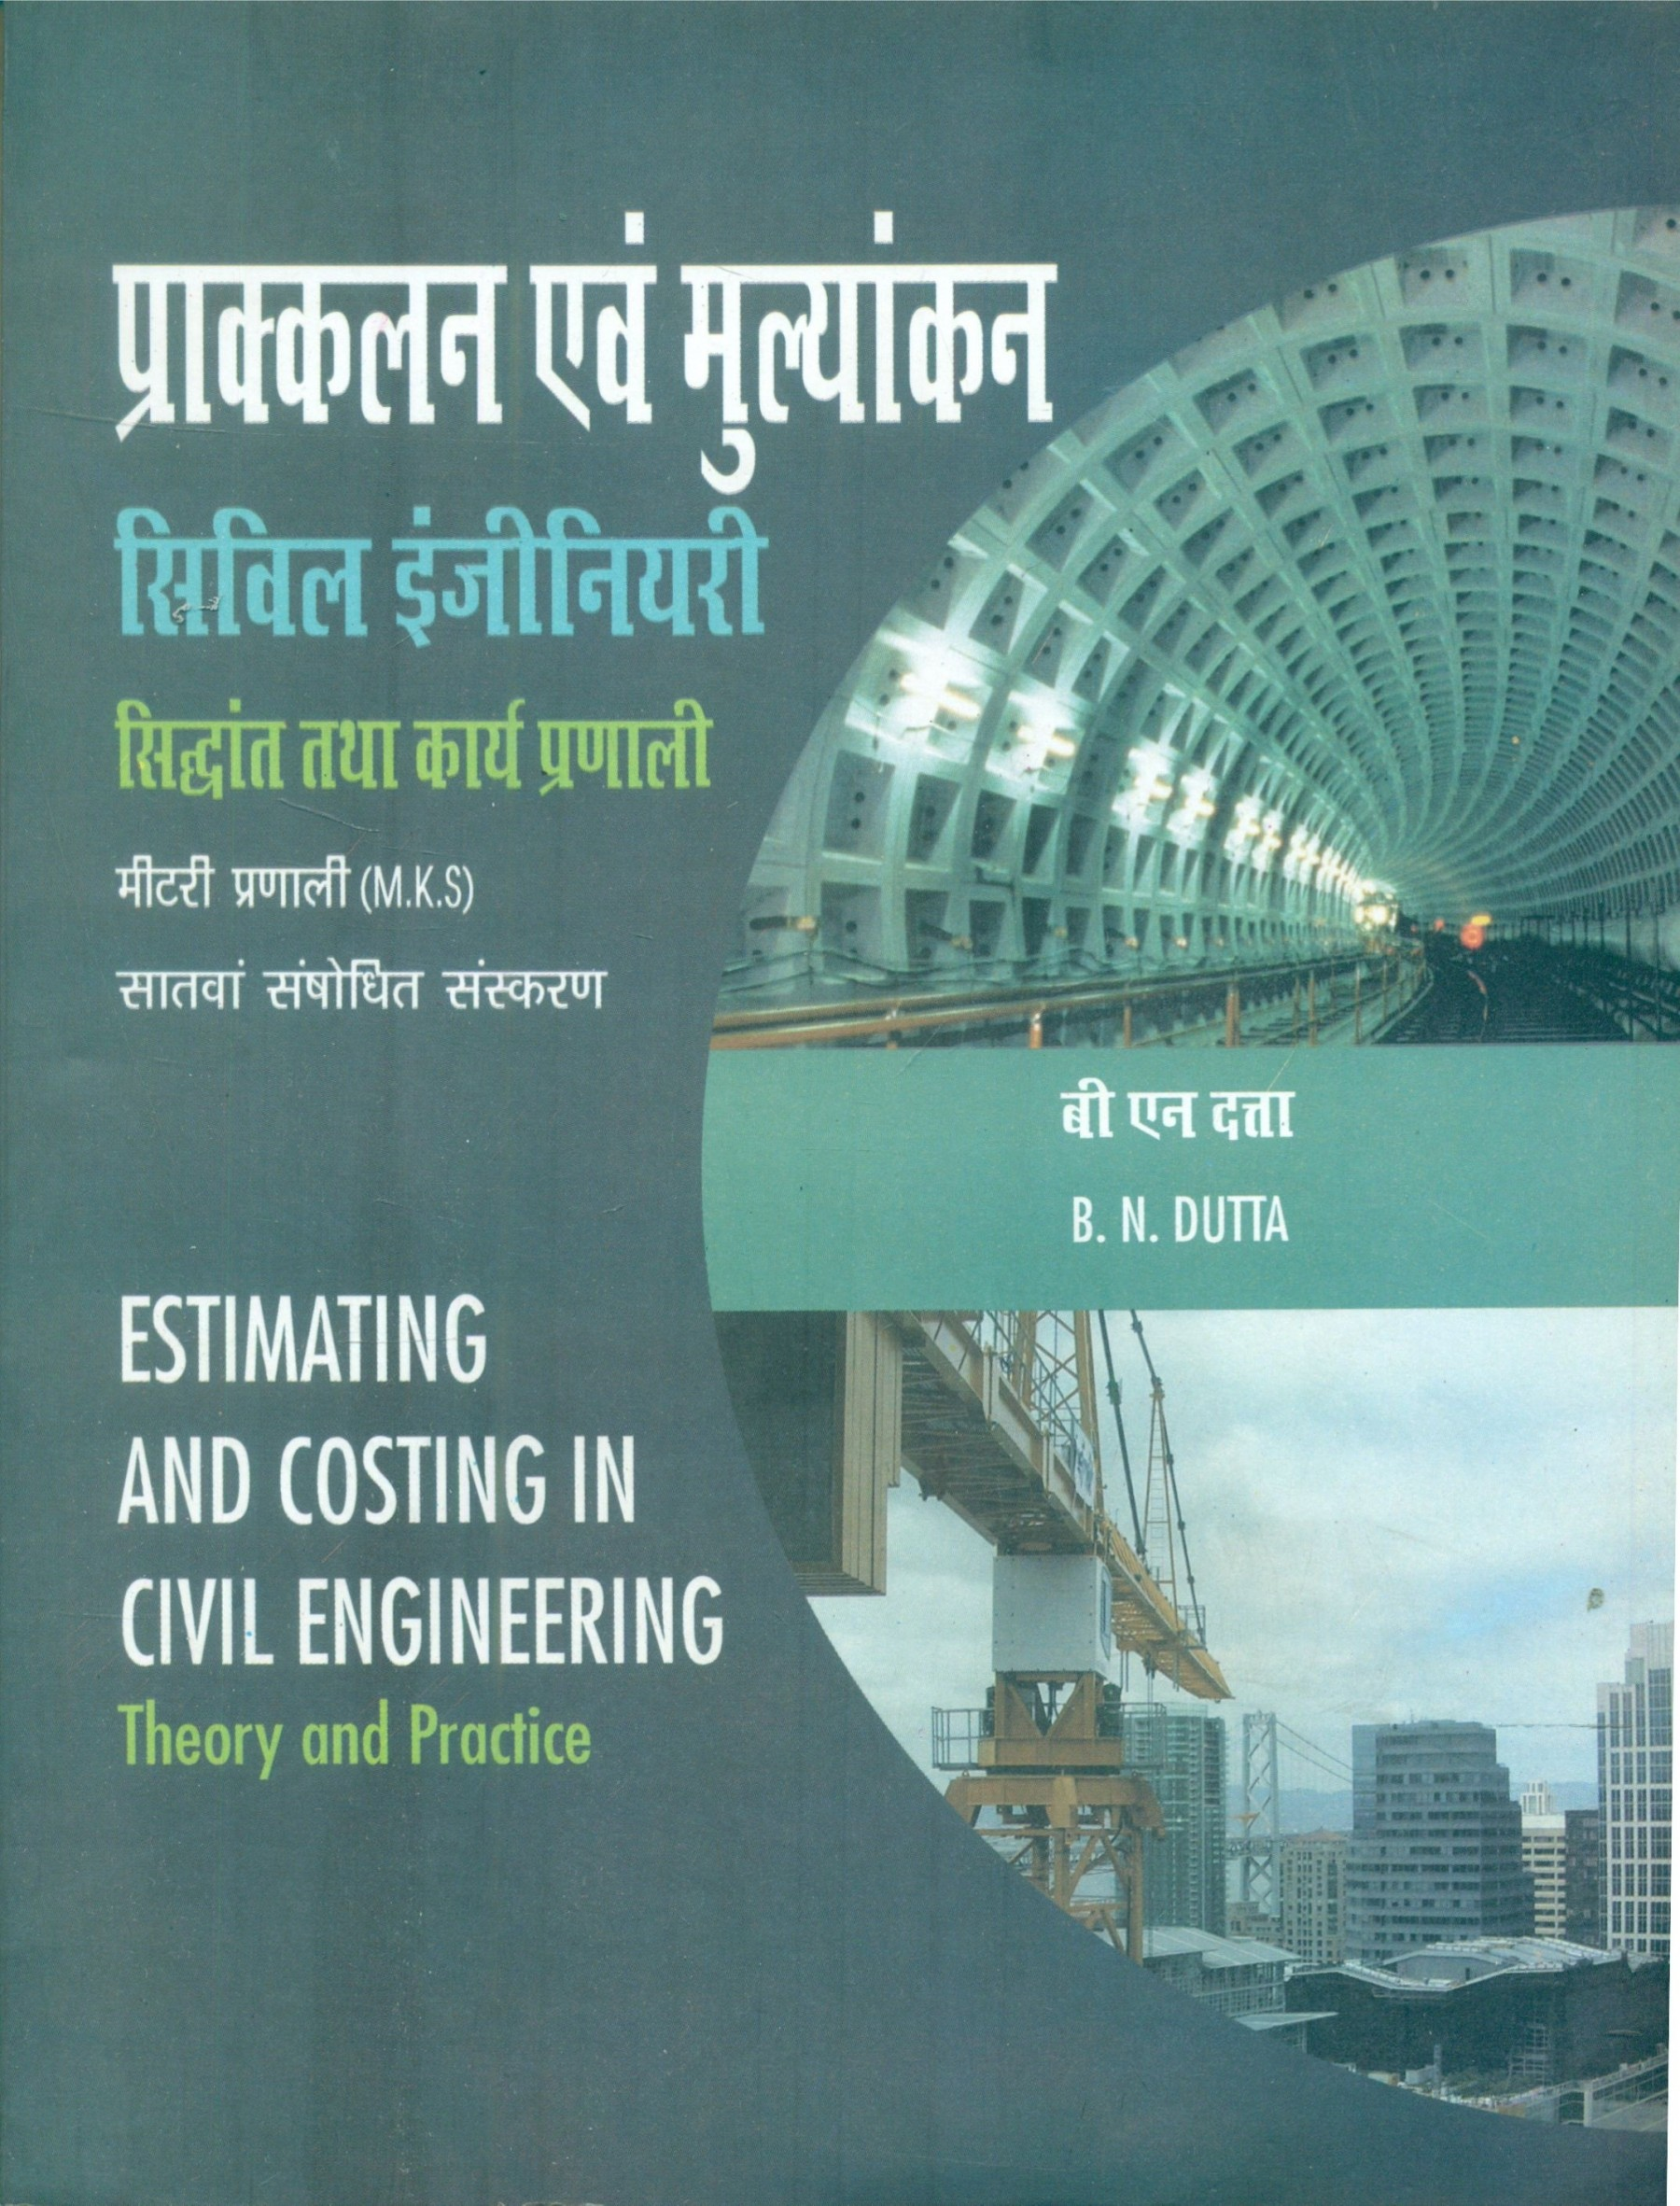 ESTIMATING AND COSTING IN CIVIL ENGINEERING THEORY AND PRACTICE 7ED (PB 2021) (HINDI)